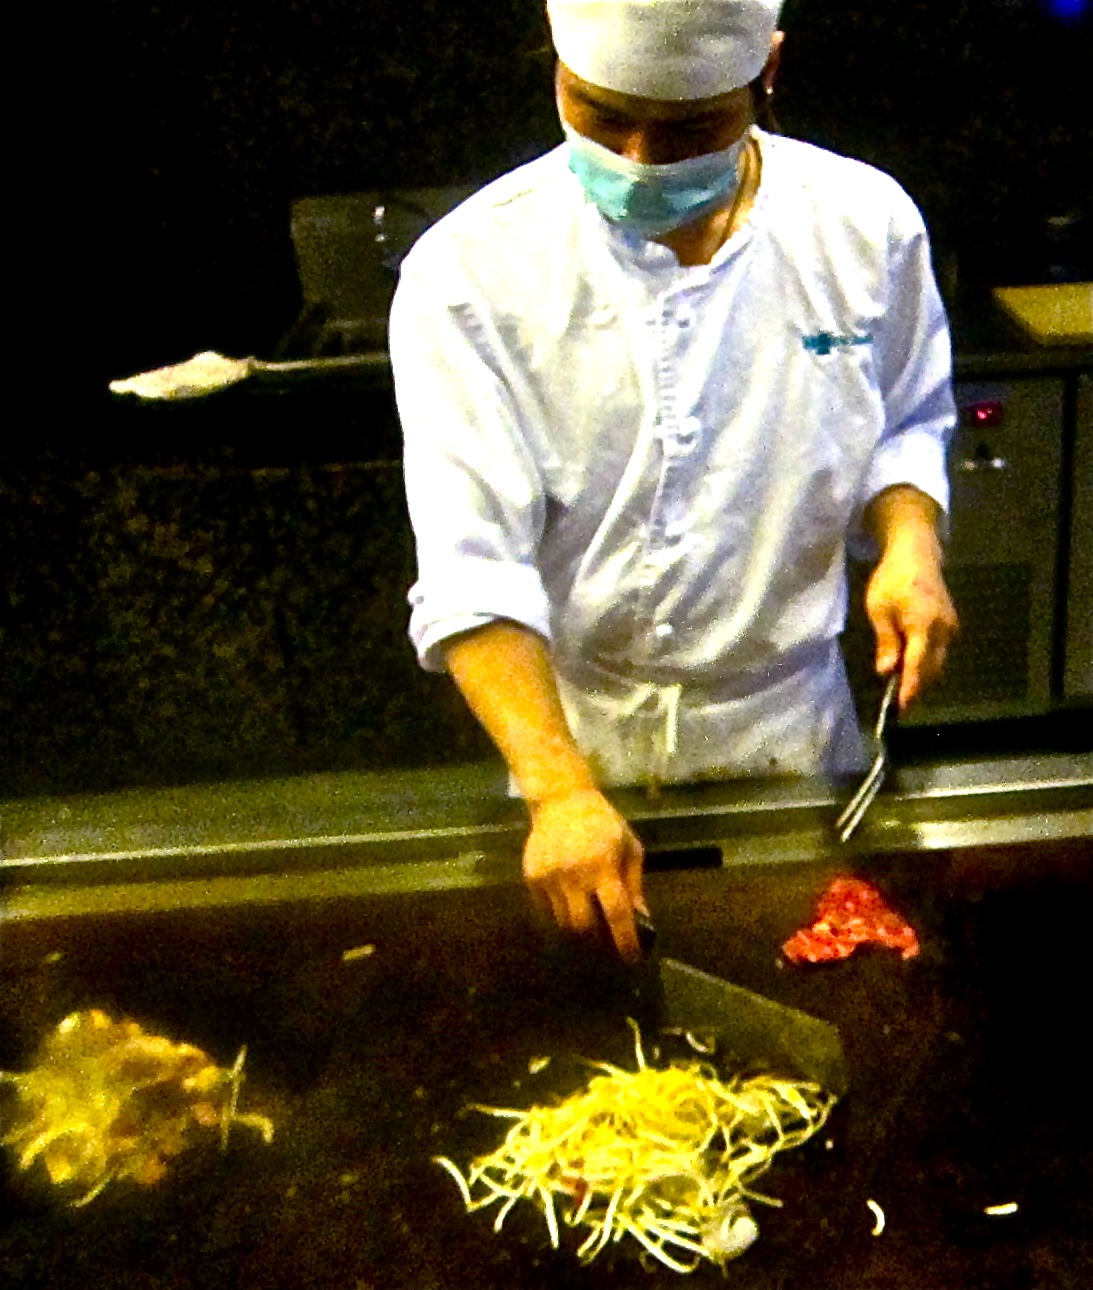 grill chef sauteeing my beef and bean sprouts